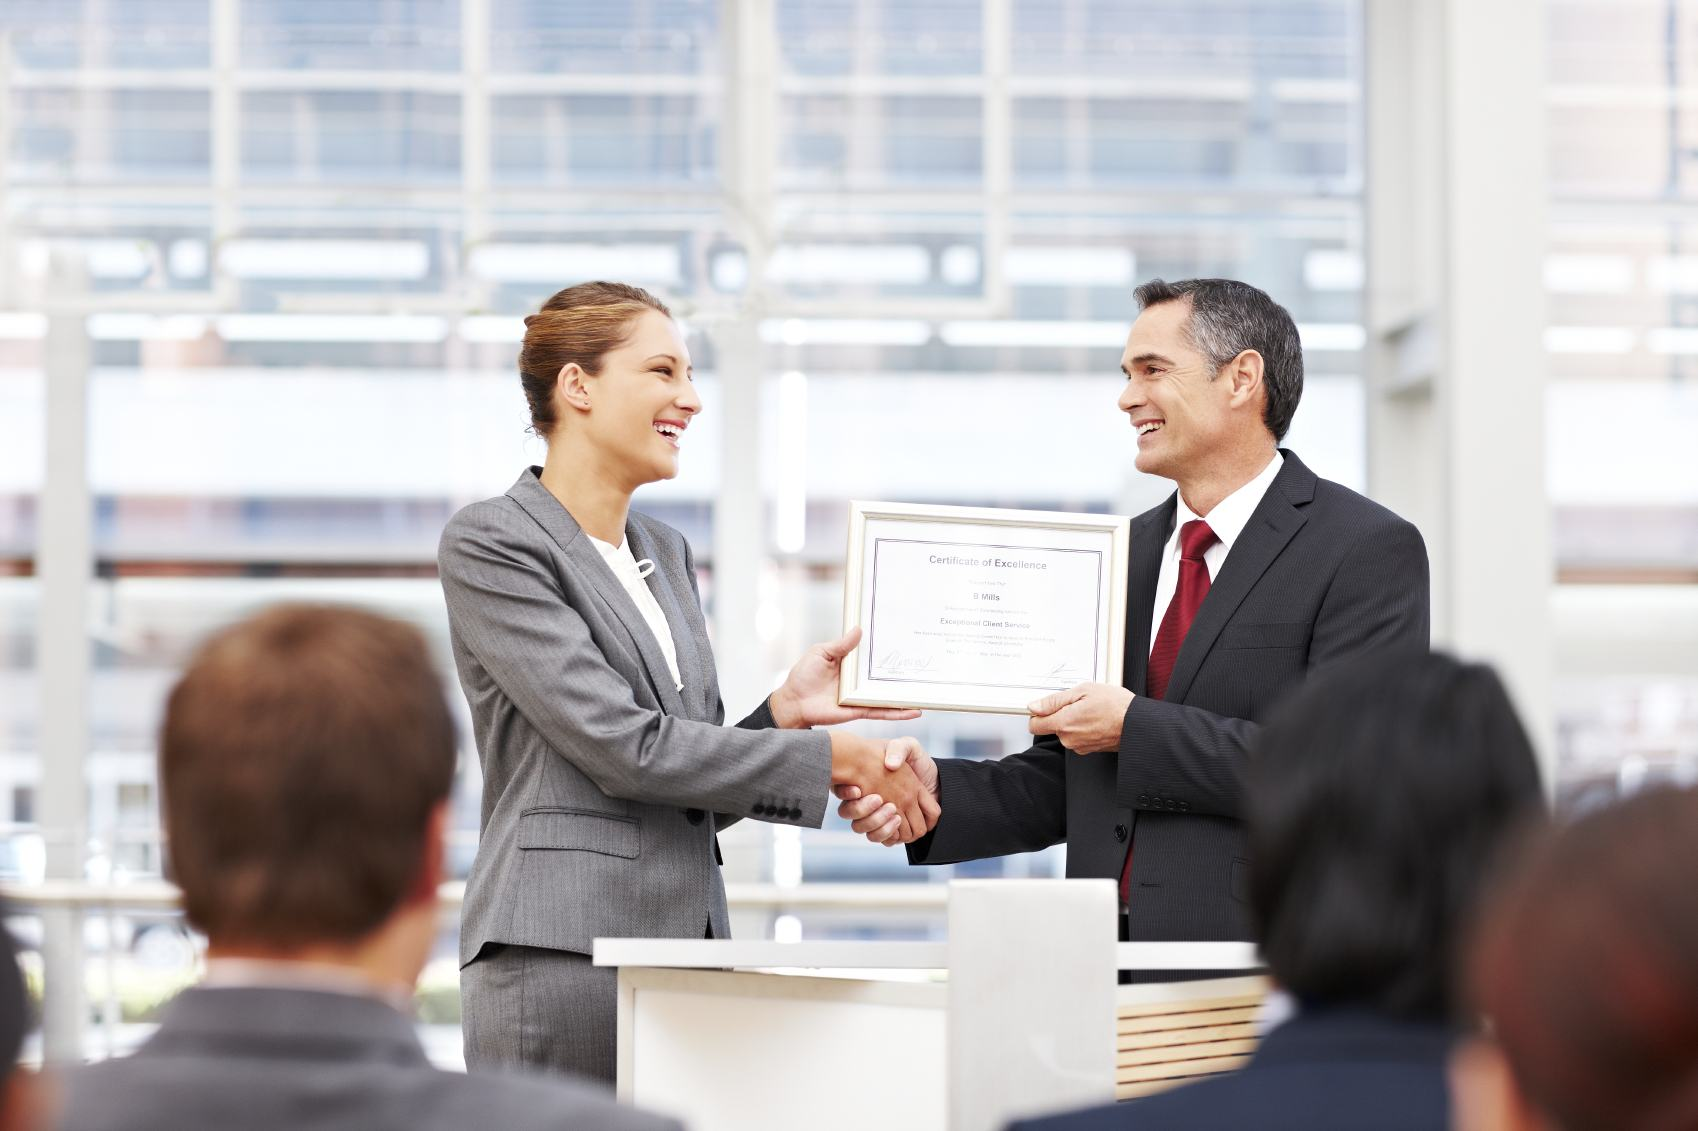 Businesswoman shakes the hand of a man giving her an award on stage. Horizontal shot.